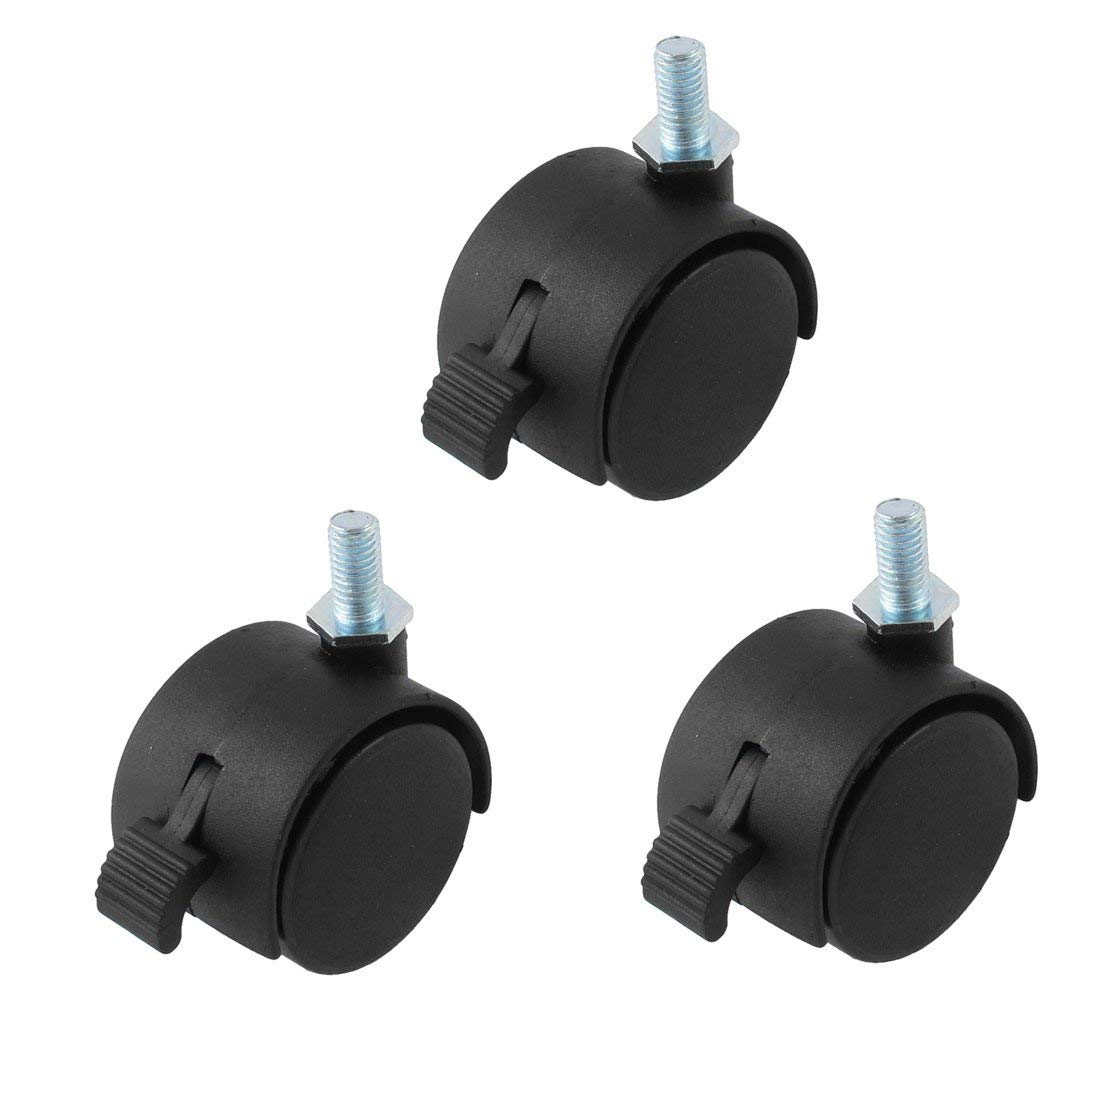 10mm Stem Diameter 15mm Two with Stoppers 11705-CASTERS-4PK-NPF 3//8 FixtureDisplays 2 Threaded Stem Casters Stem Length 9//16 Set of 4